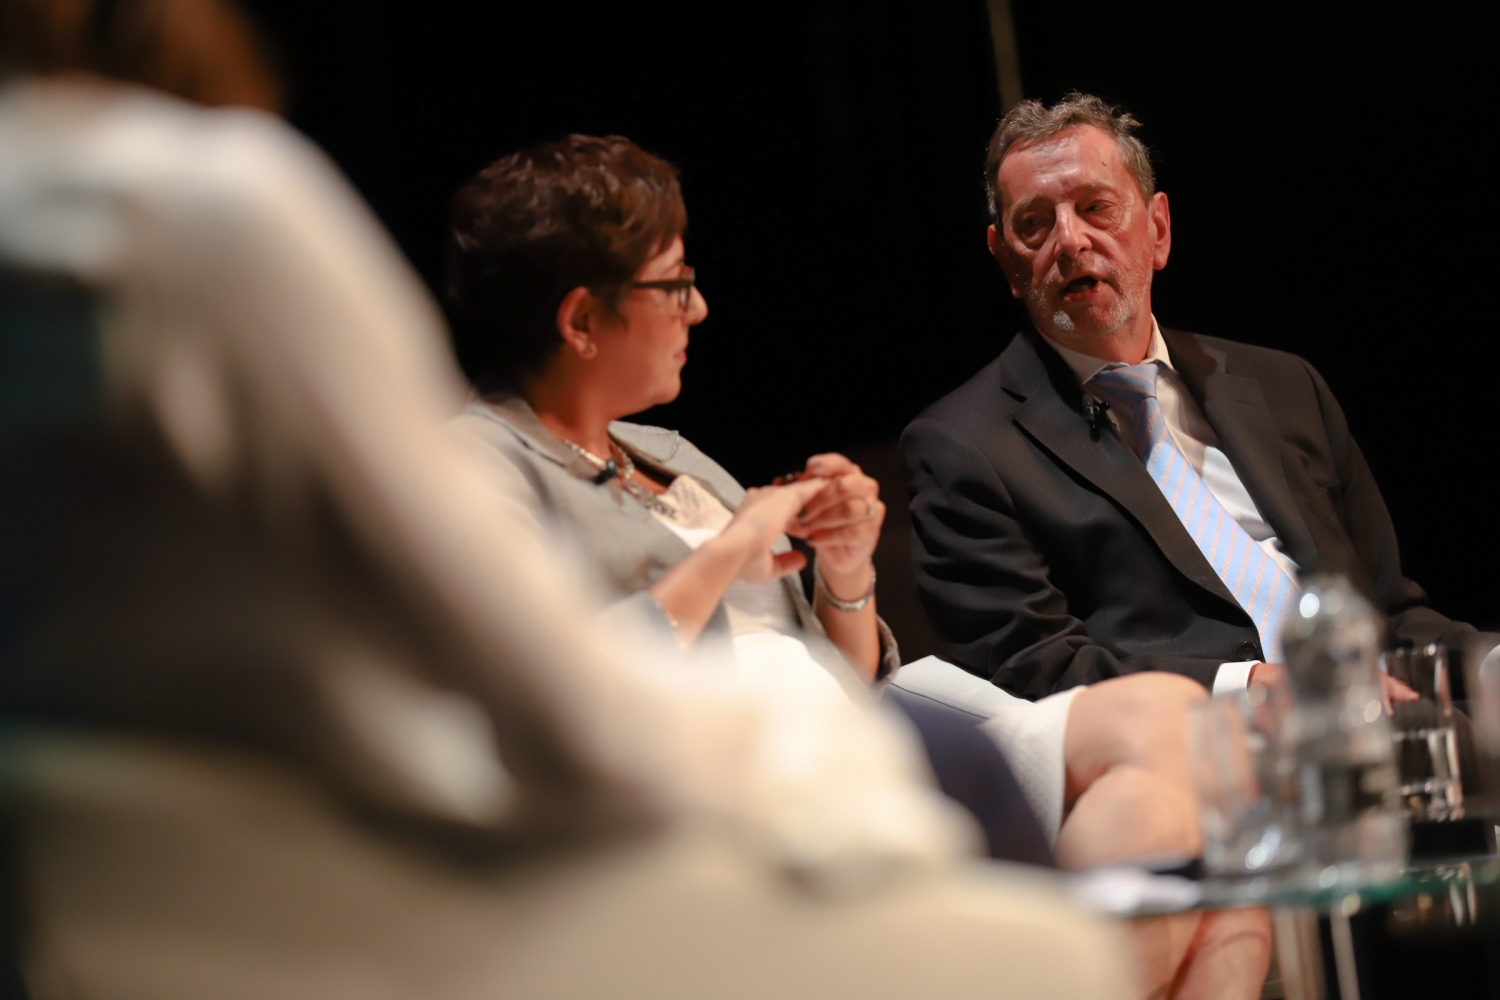 Women and Machine - David Blunkett